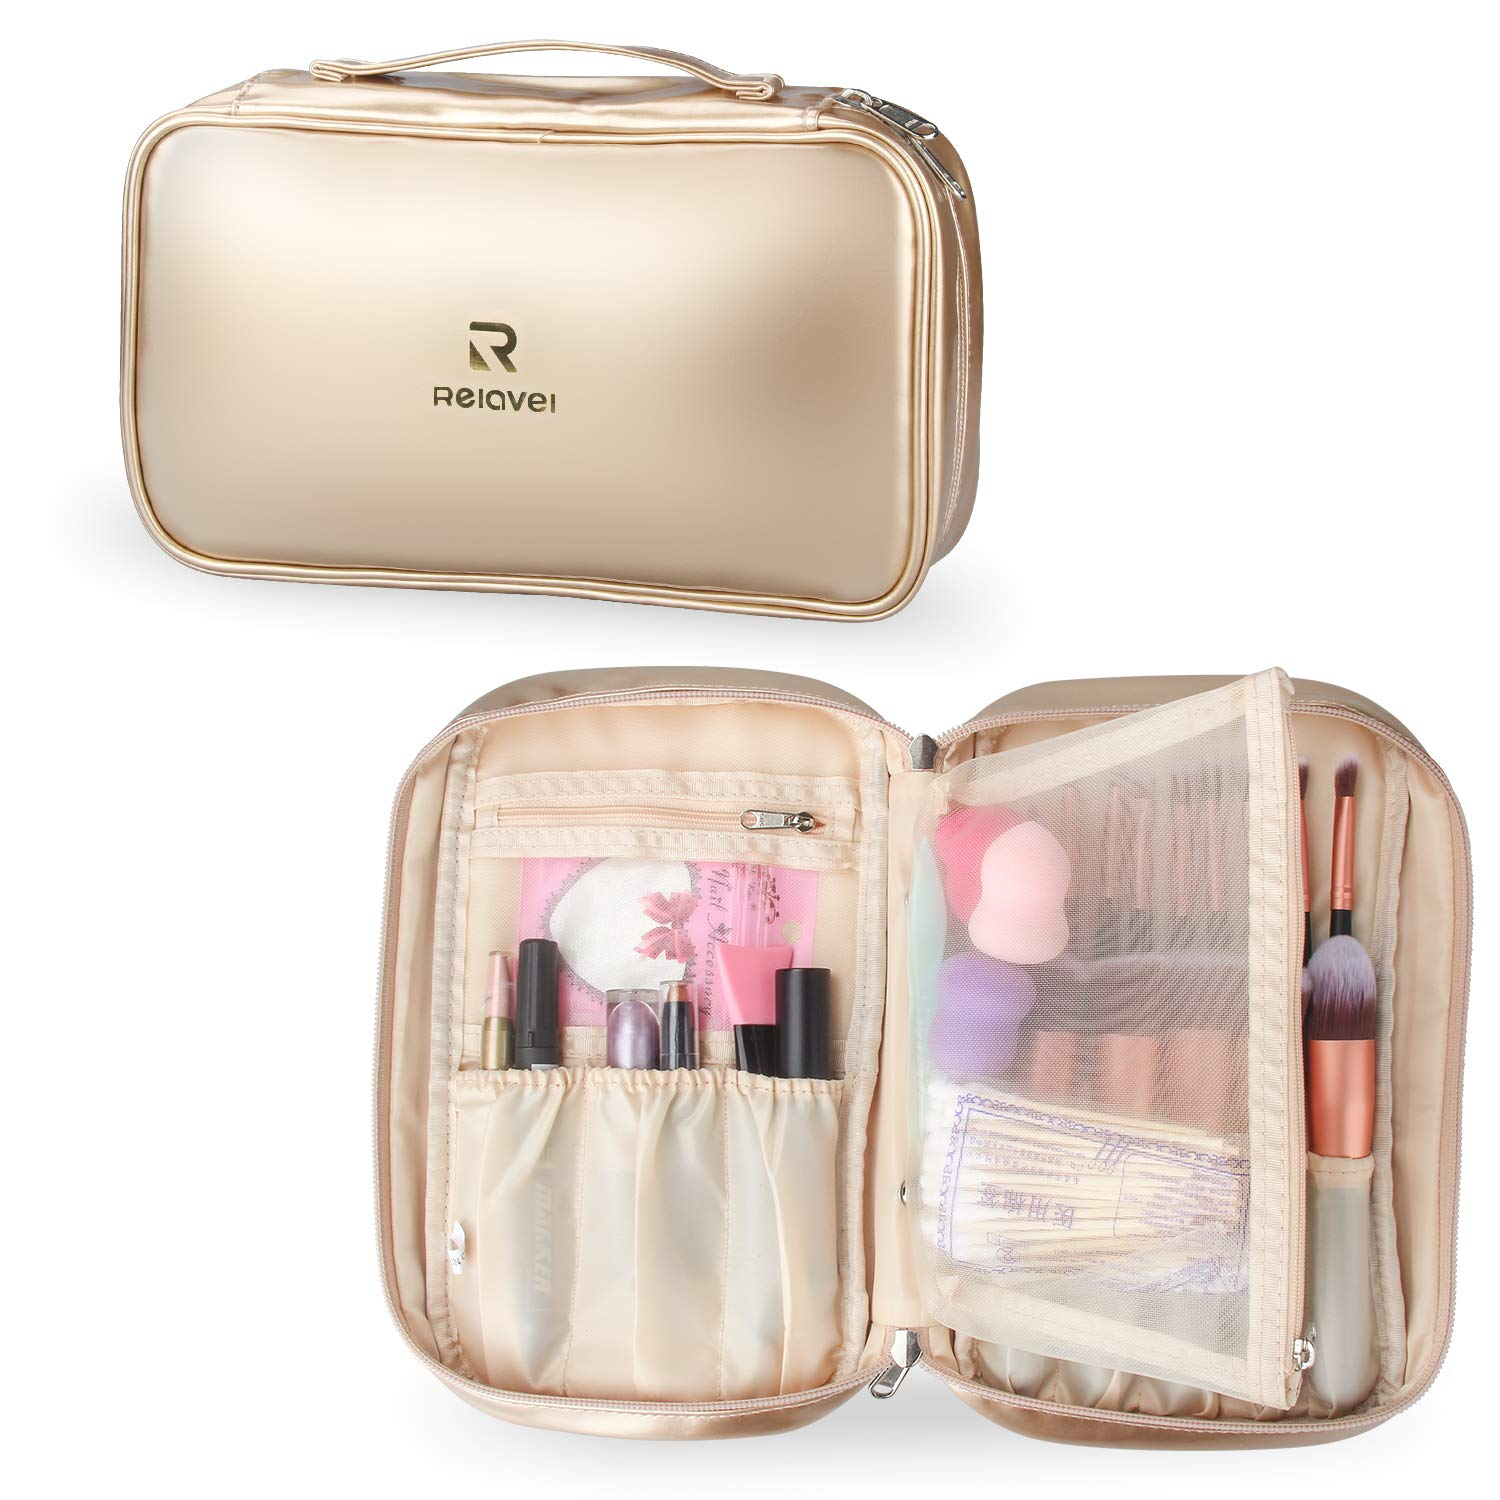 Relavel Professional Cosmetic Case Makeup Brush Organizer Makeup Artist Case with Belt Strap Holder Multi functional Cosmetic Bag Makeup Handbag for Travel Home Gift (Champagne Gold)